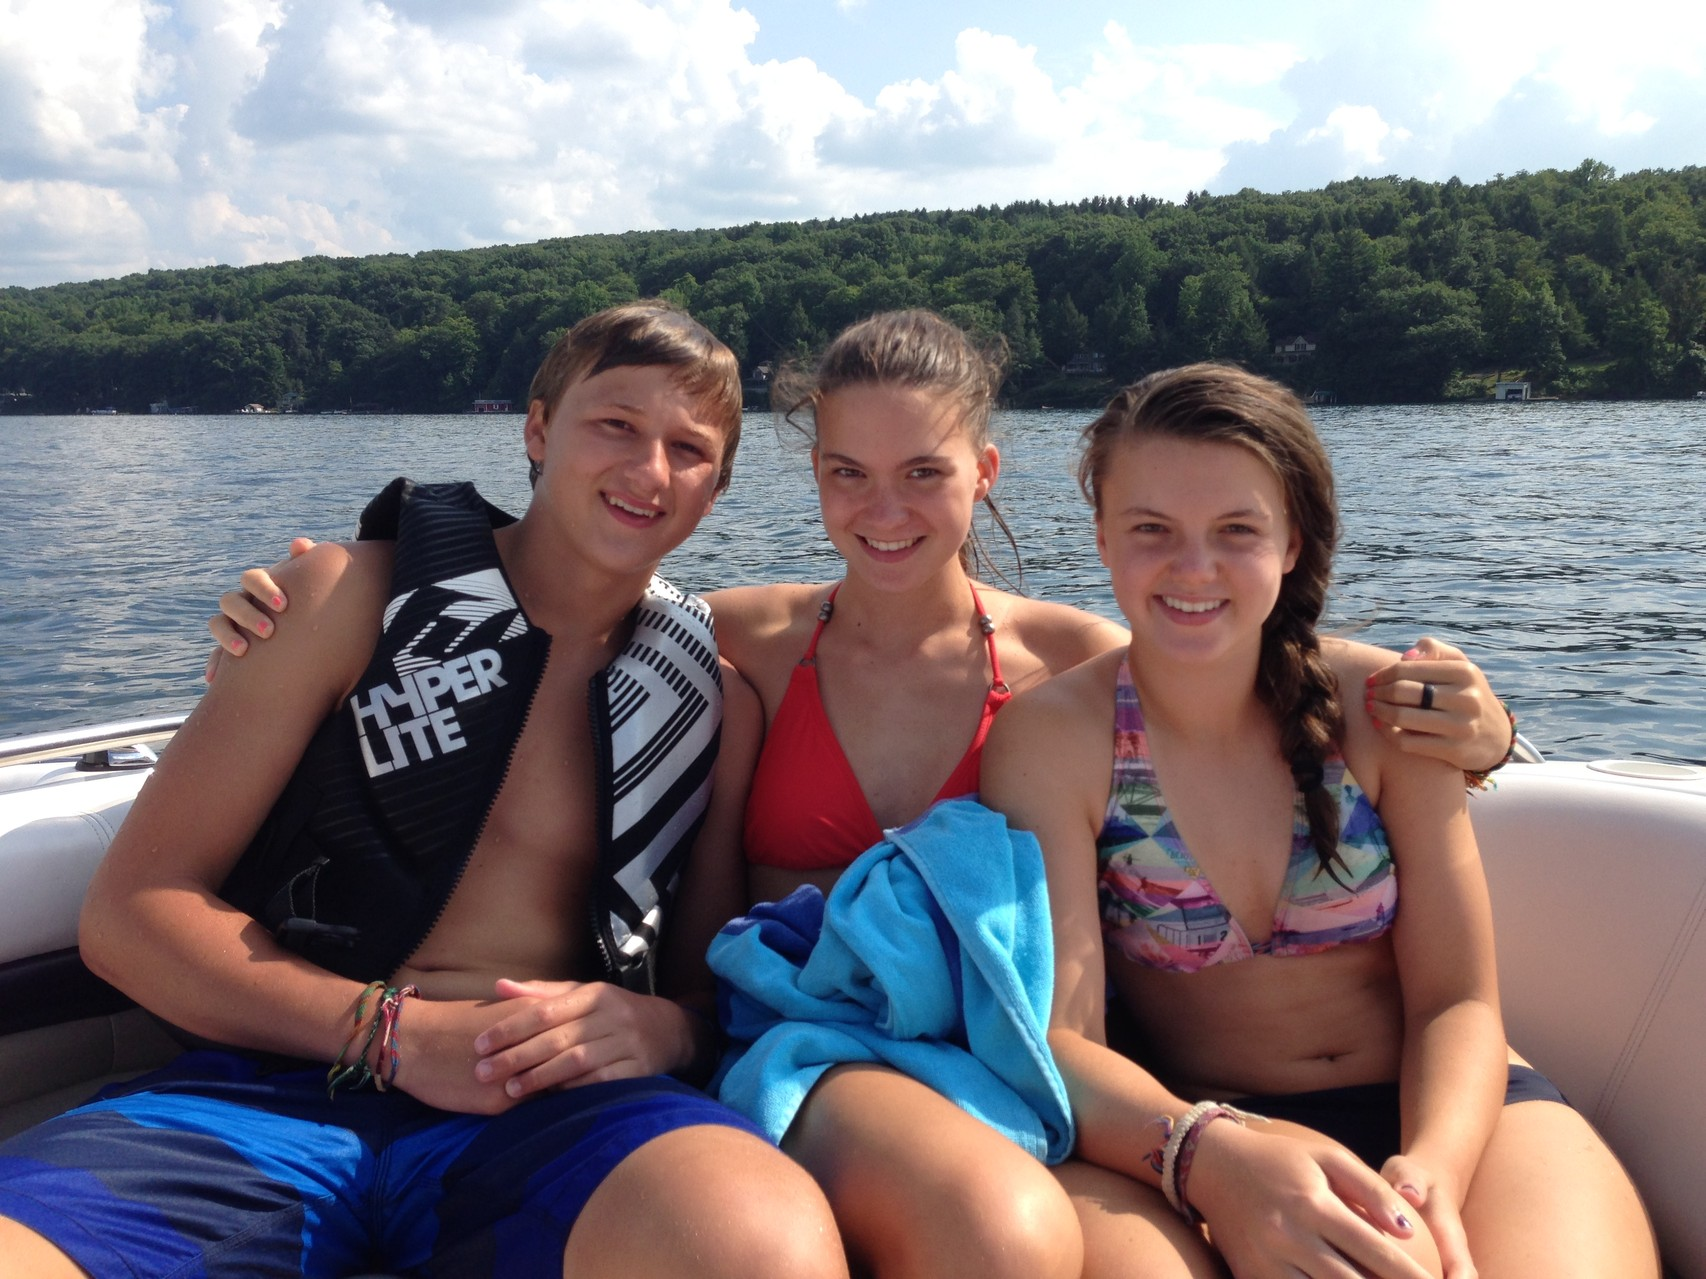 Jack, Ellie, & Kate, August, 2014 Waterskiing